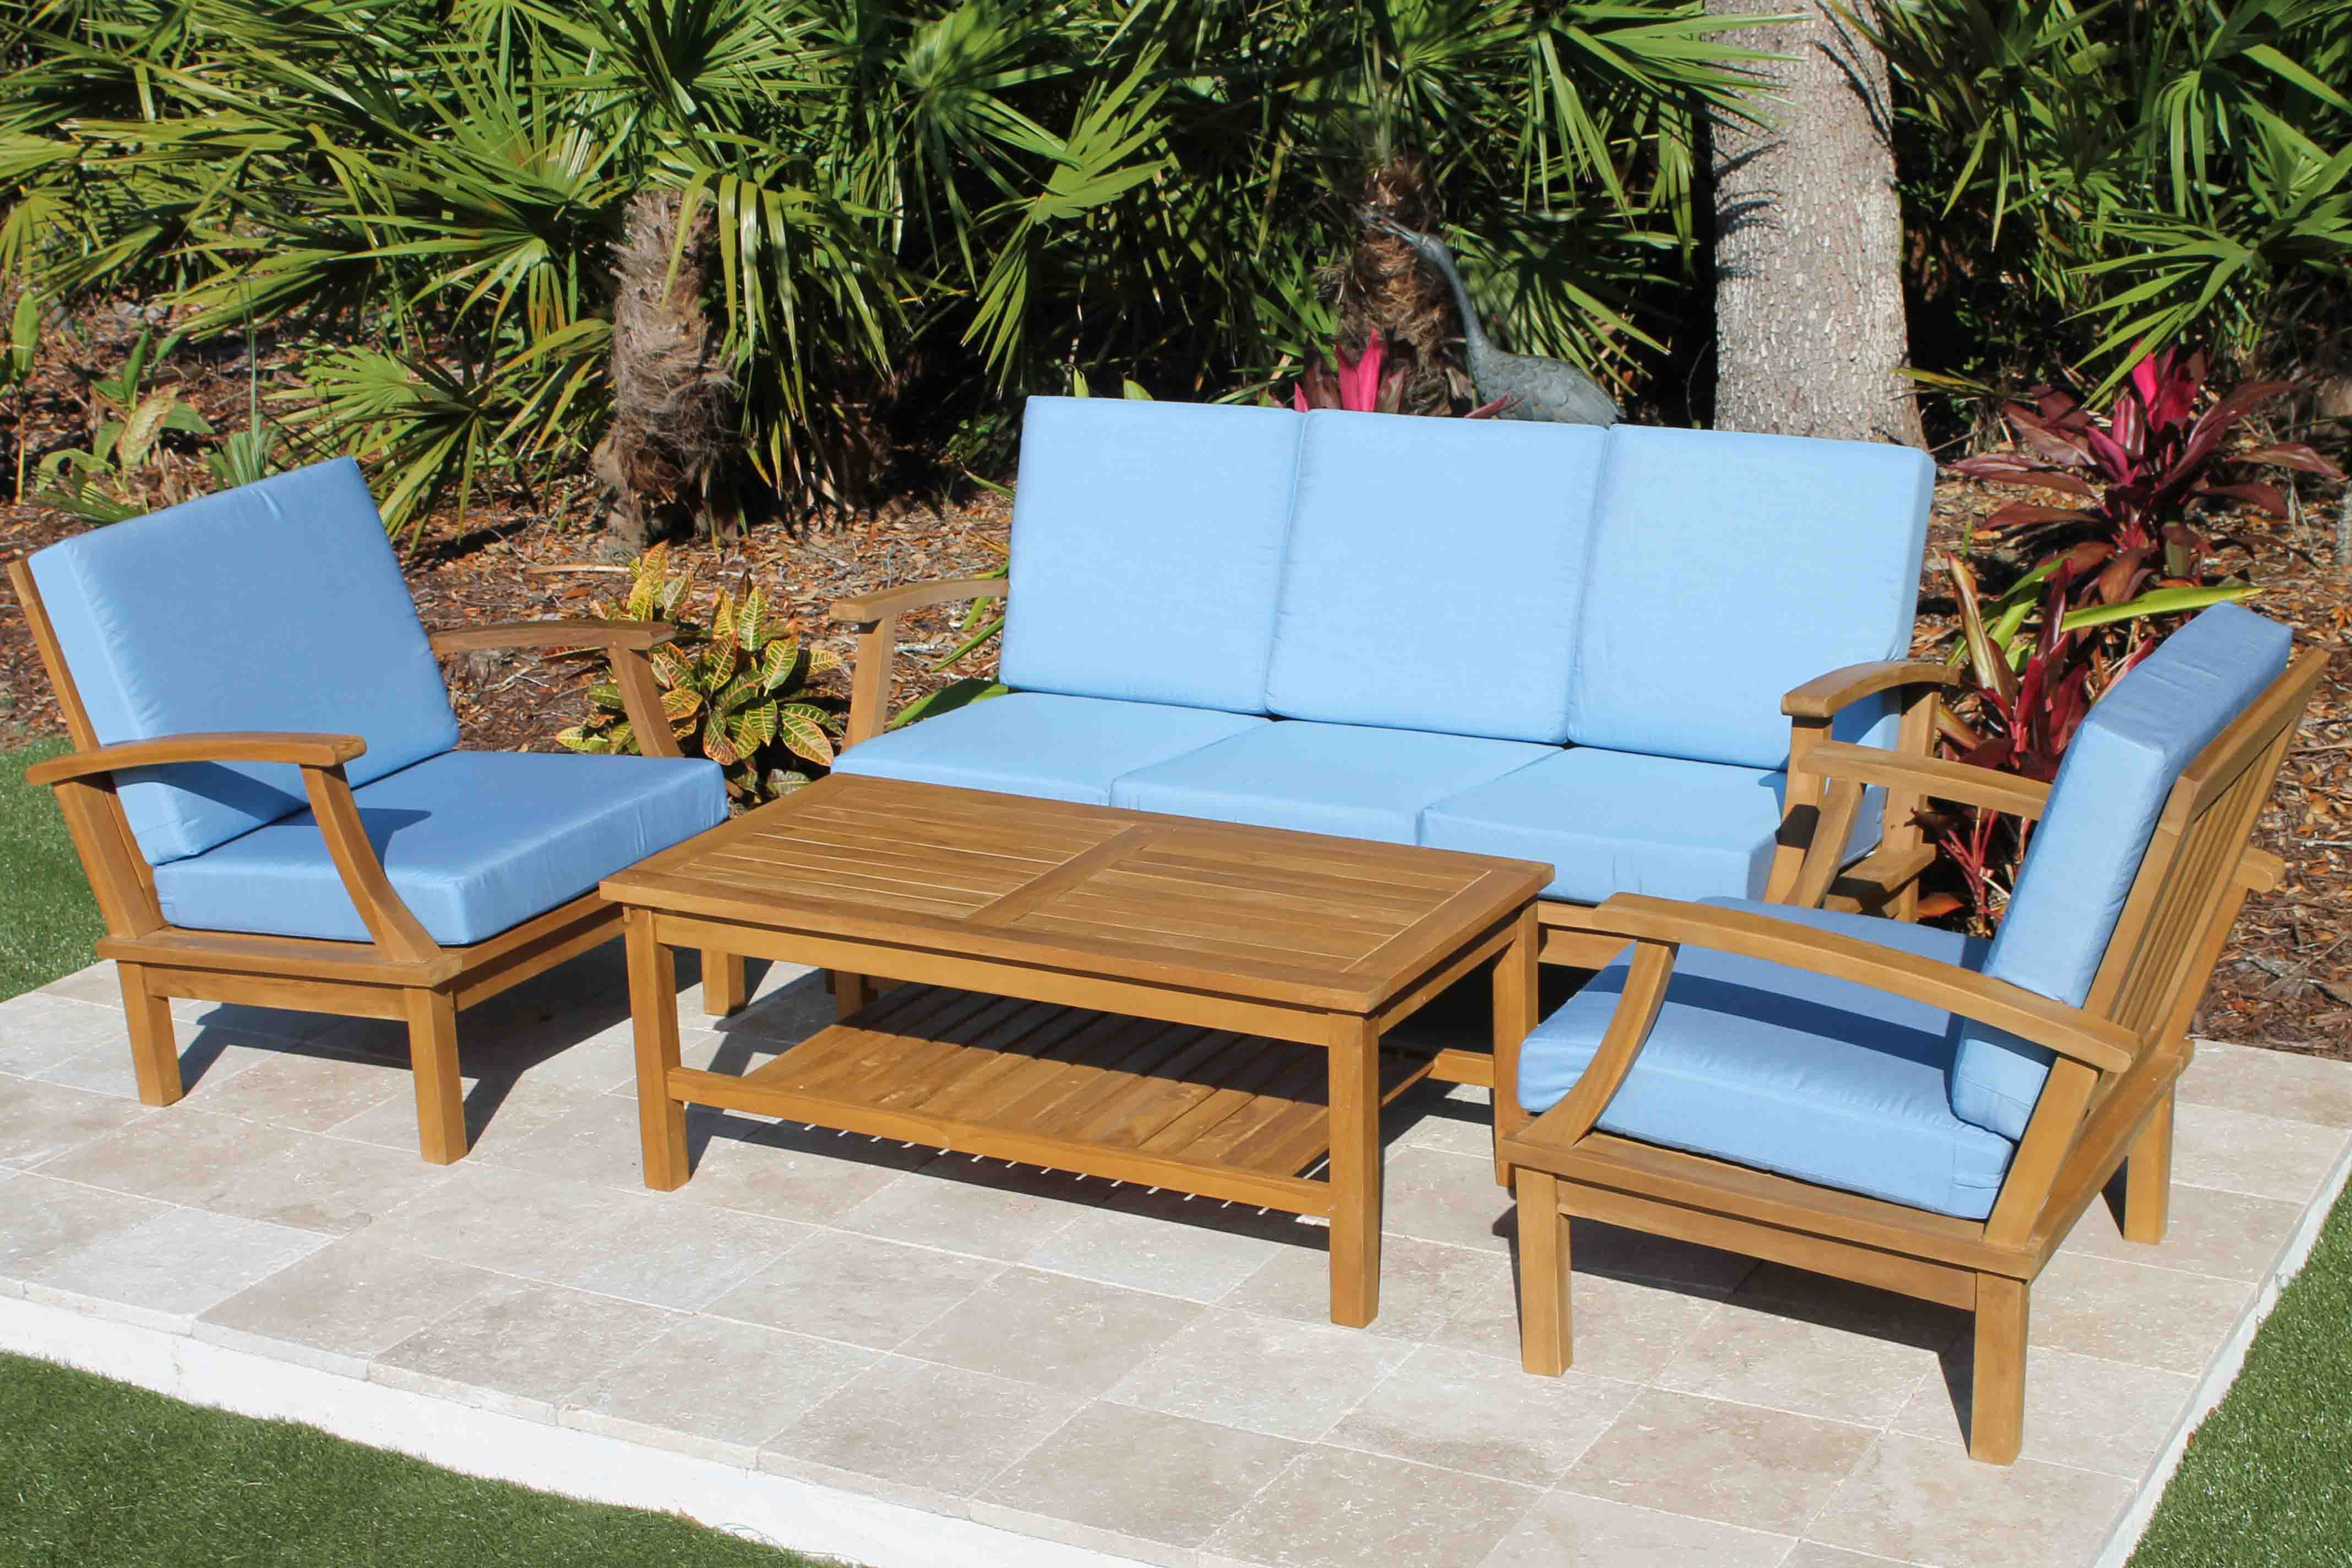 Deep Seat Teak Set – 5 Seat including Full Sunbrella Cushions